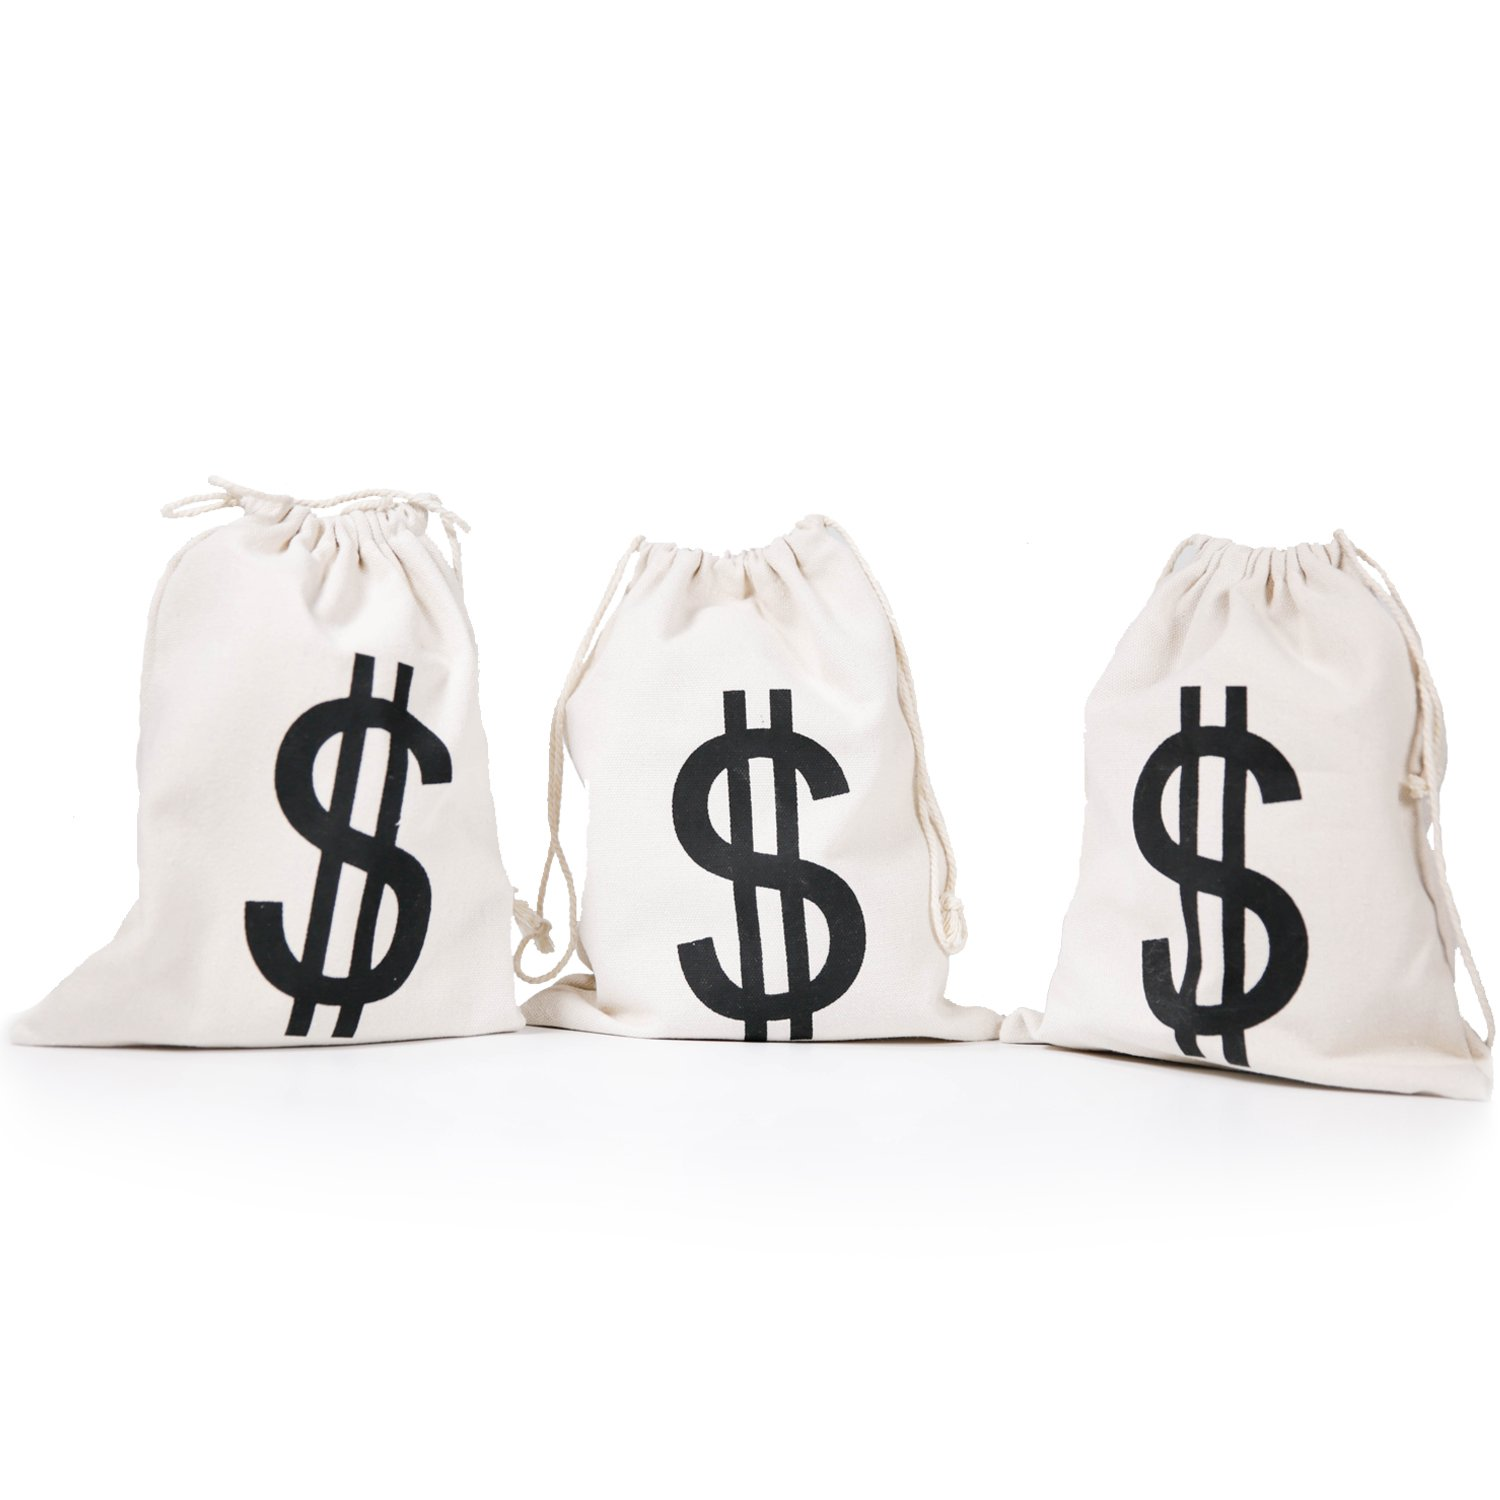 Dollar Sign $ Money Bag 8 x 10 Inches (3pcs/Pkg) Canvas Drawstring Bag Bank Robber Bag Christmas Gift Bag PAUBOLI yw0016-8x10-1